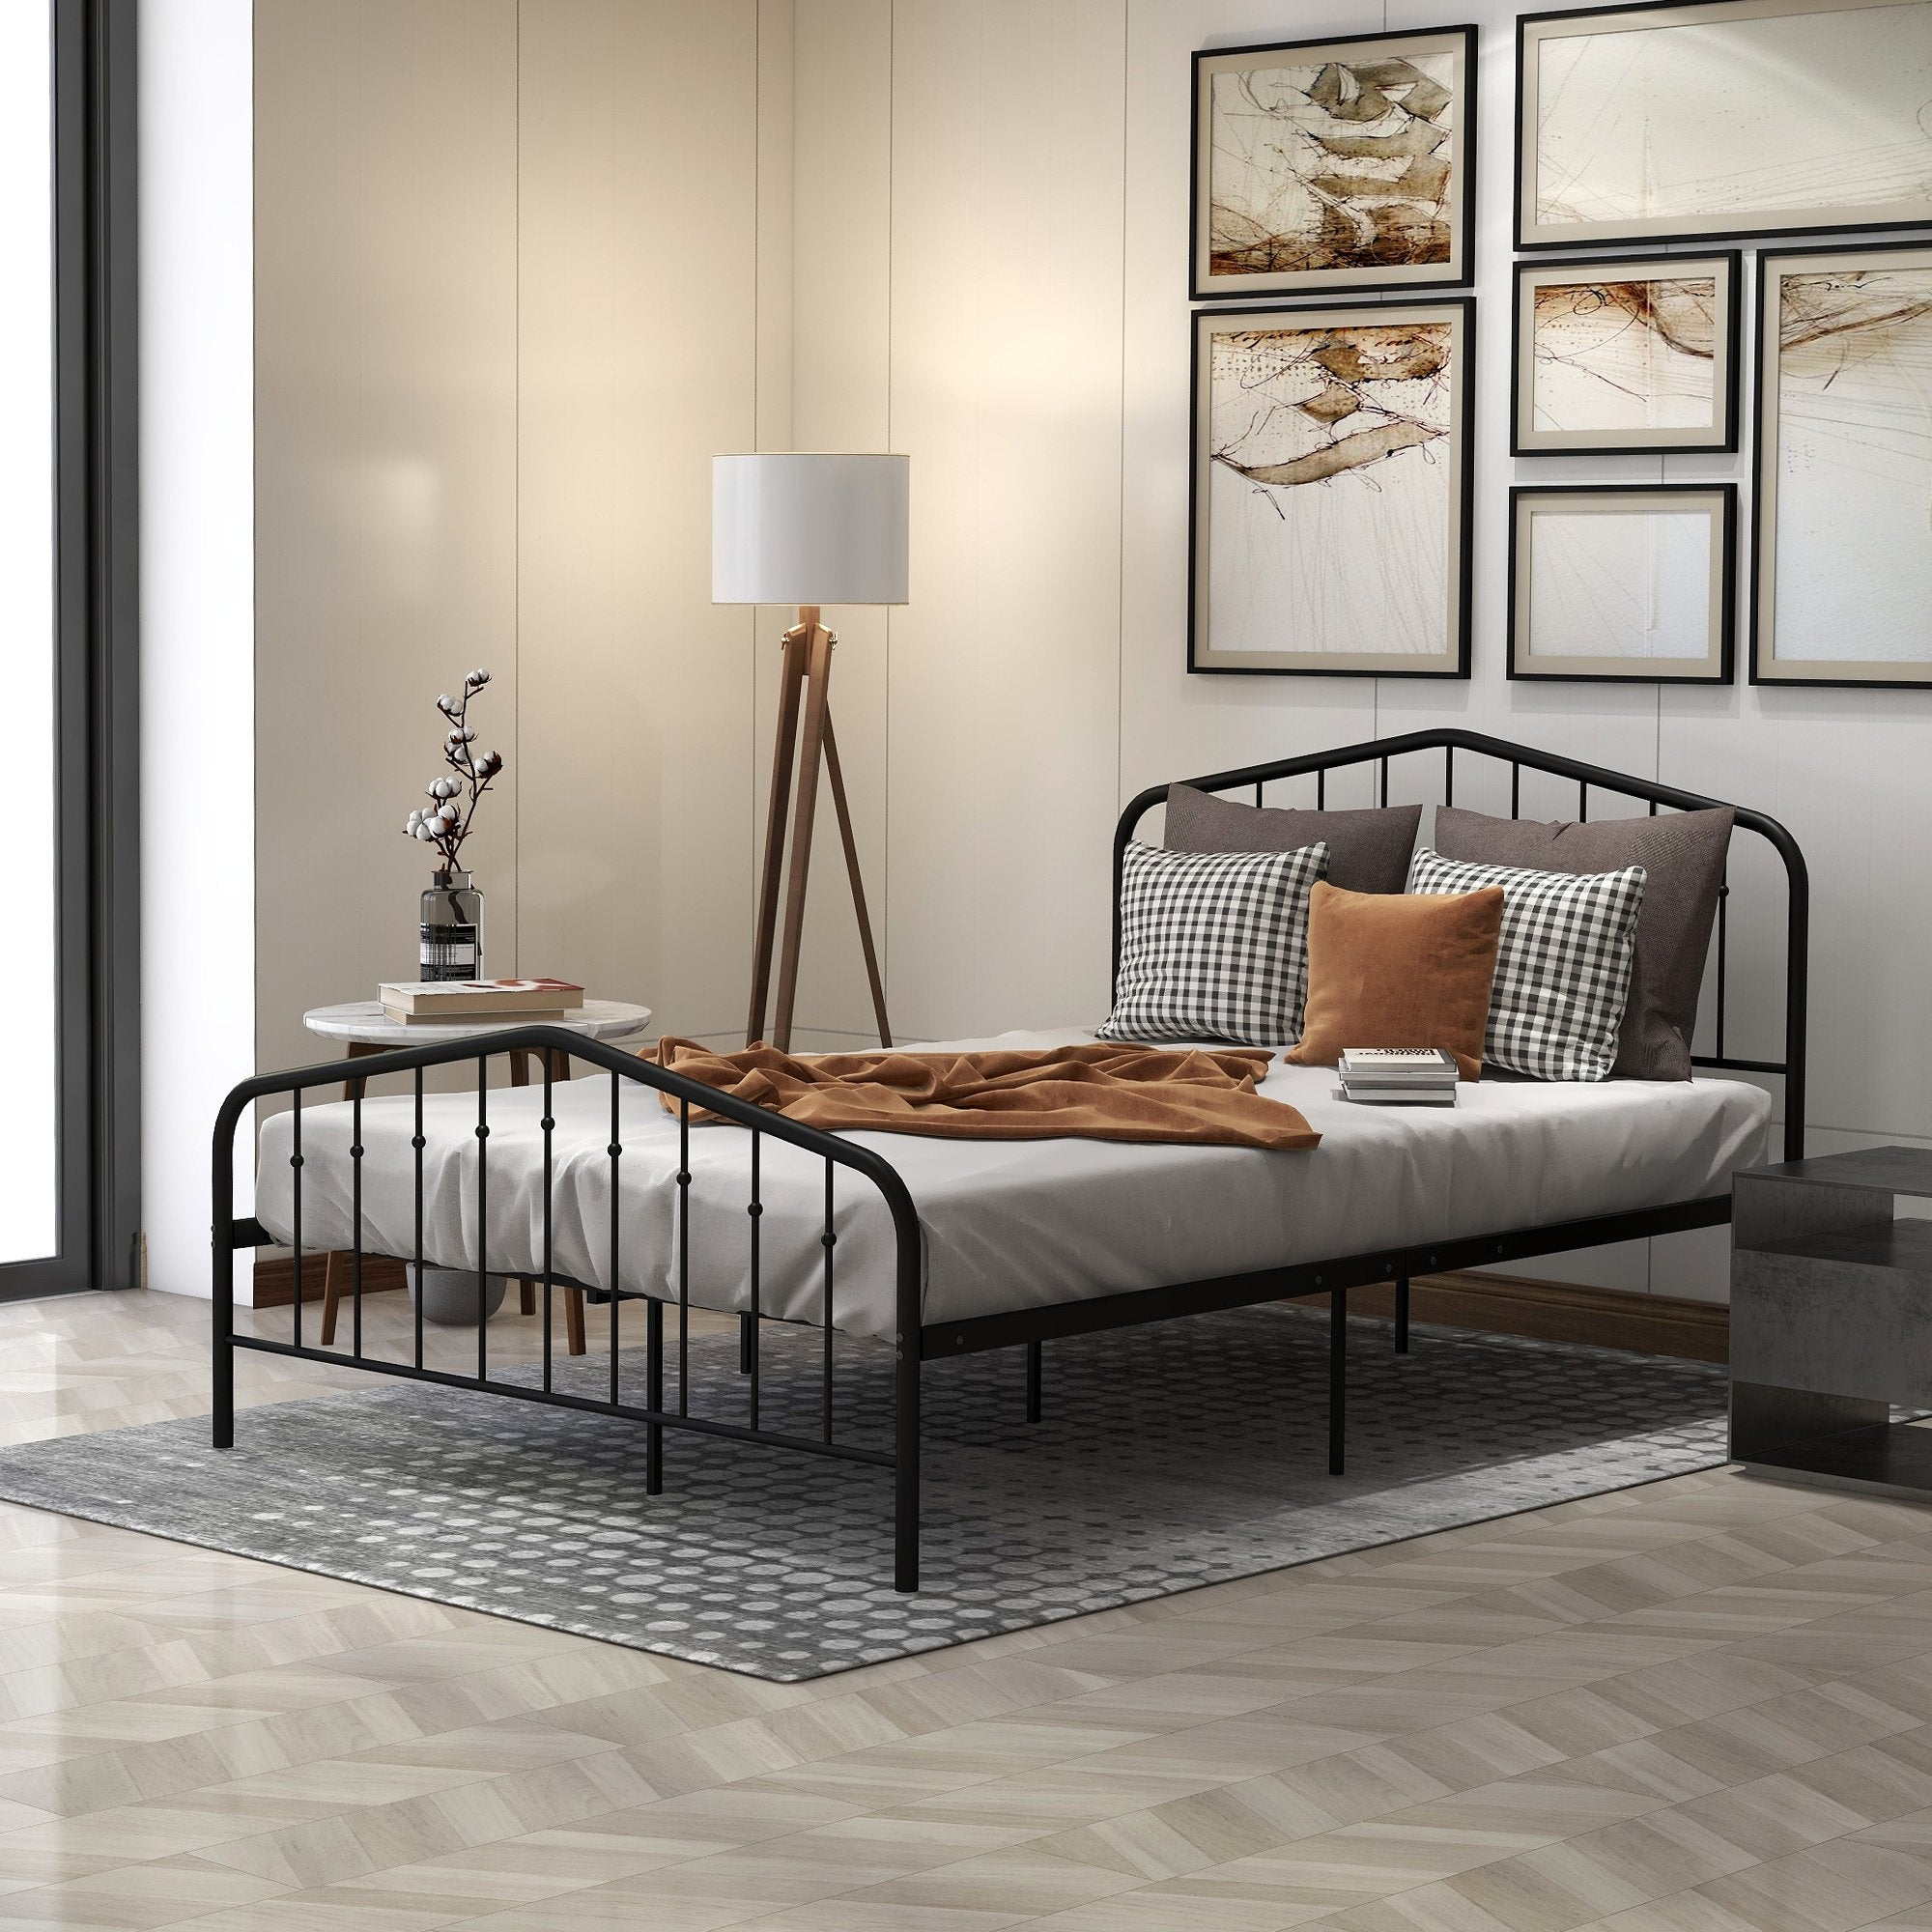 Queen Size Black Metal Platform Bed With High Profile Headboard And Fo Homedaybed